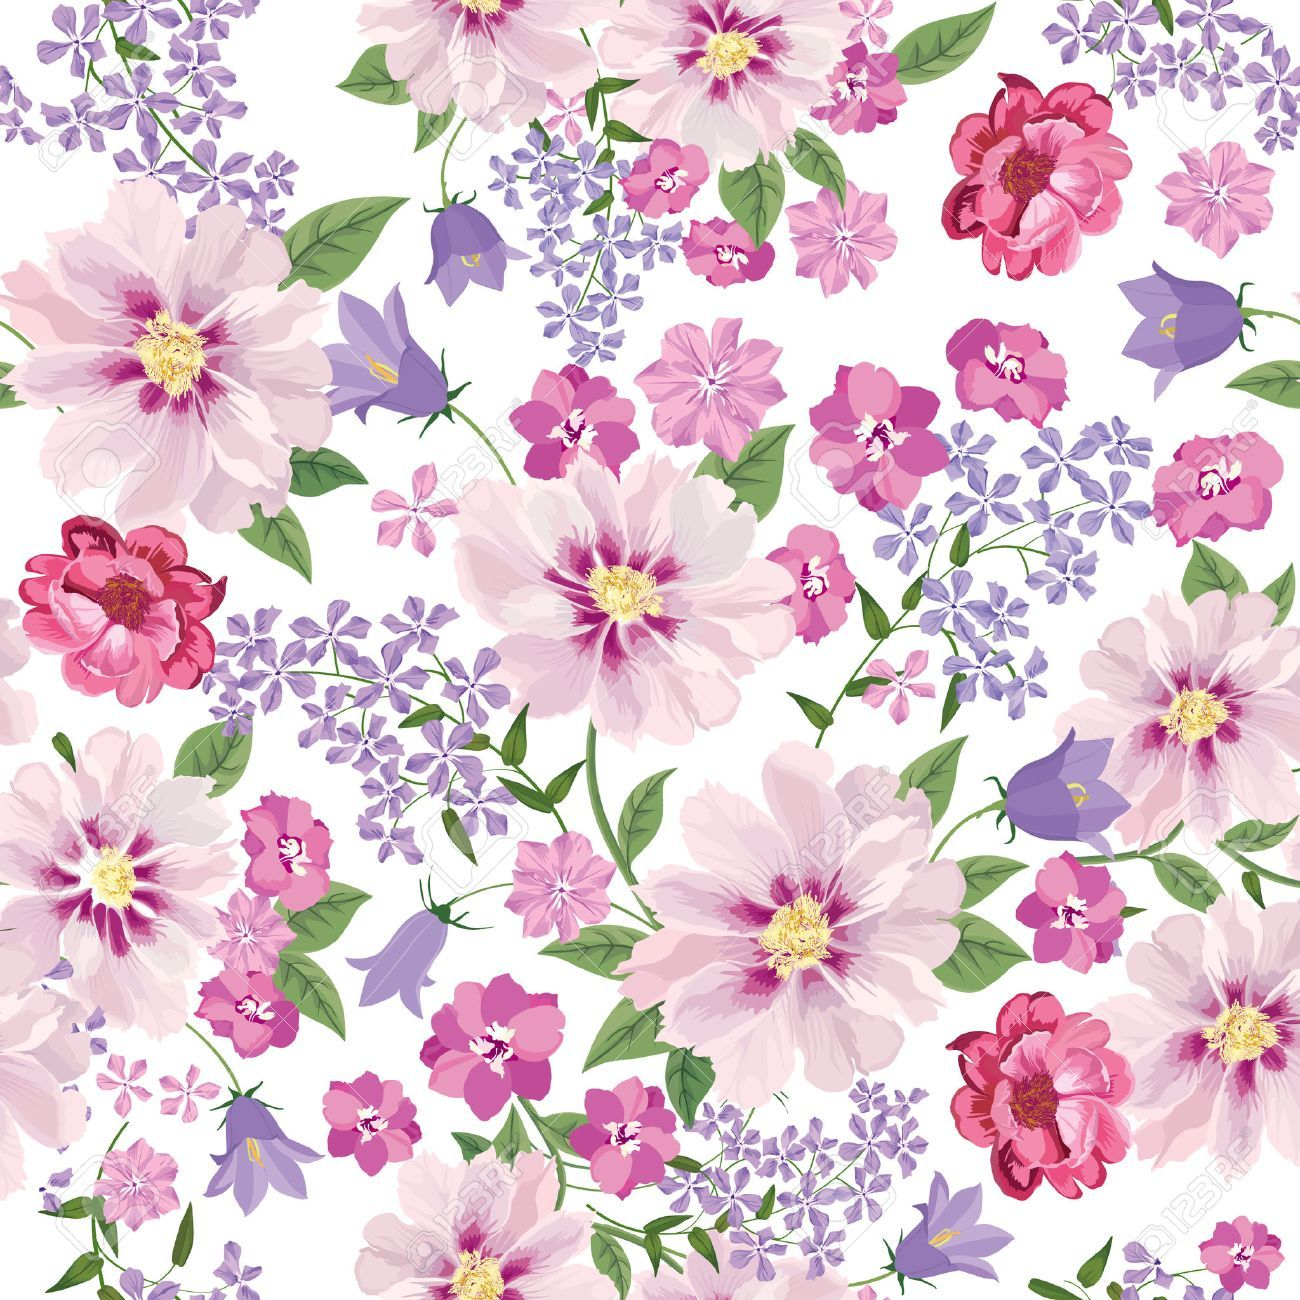 Free floral background clipart 2 » Clipart Portal.